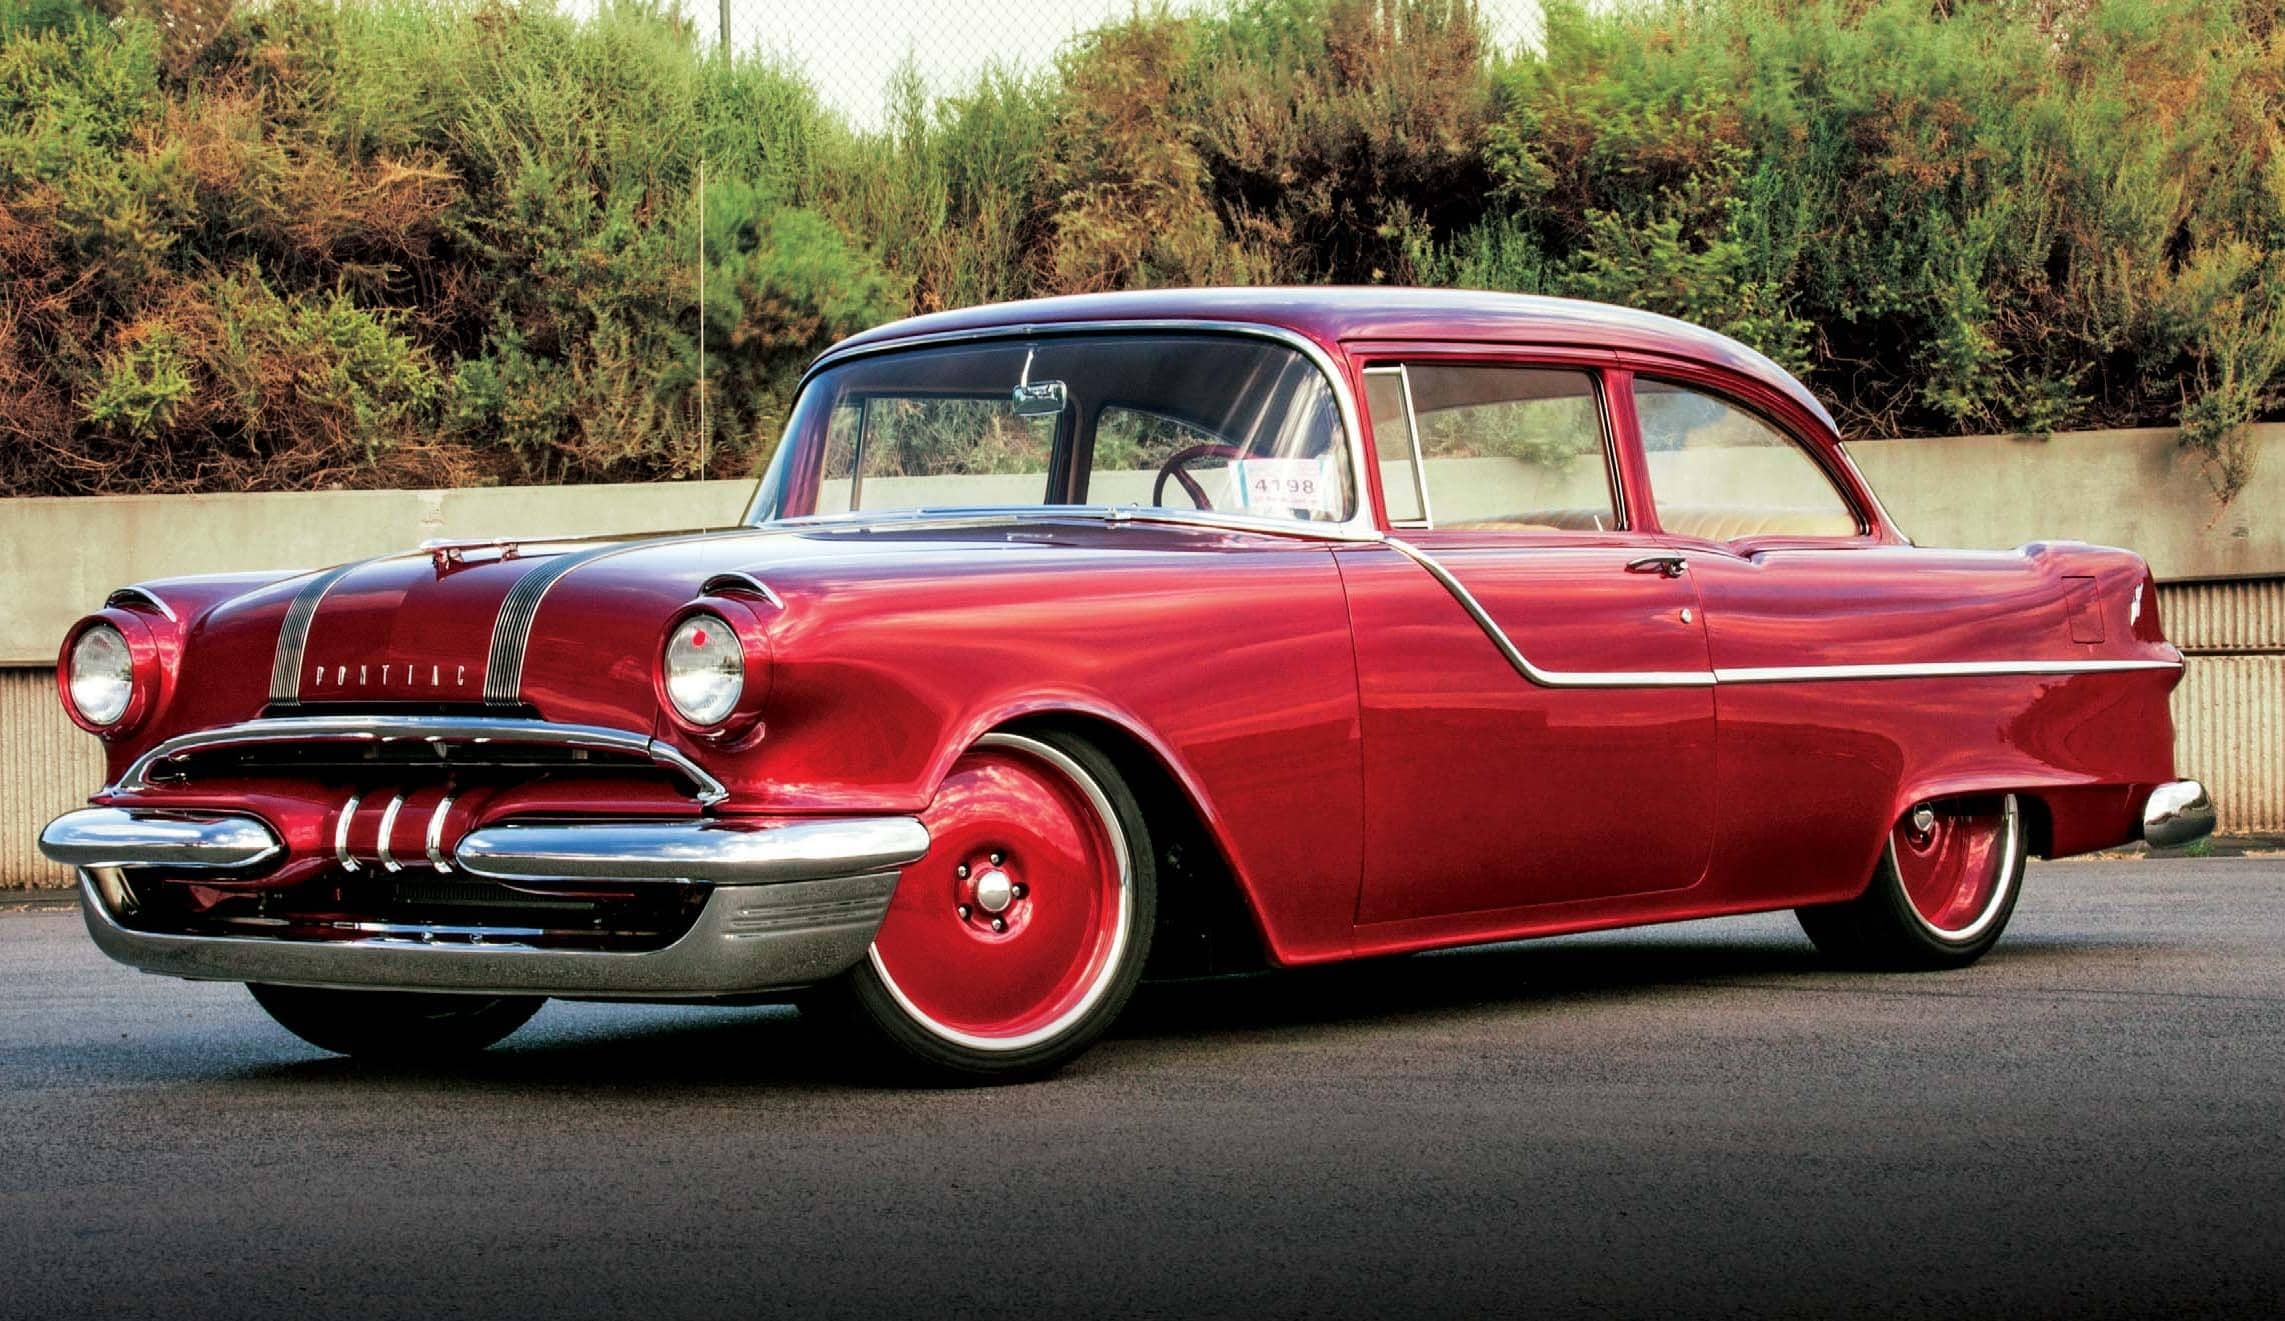 CANDY APPLE CHIEF